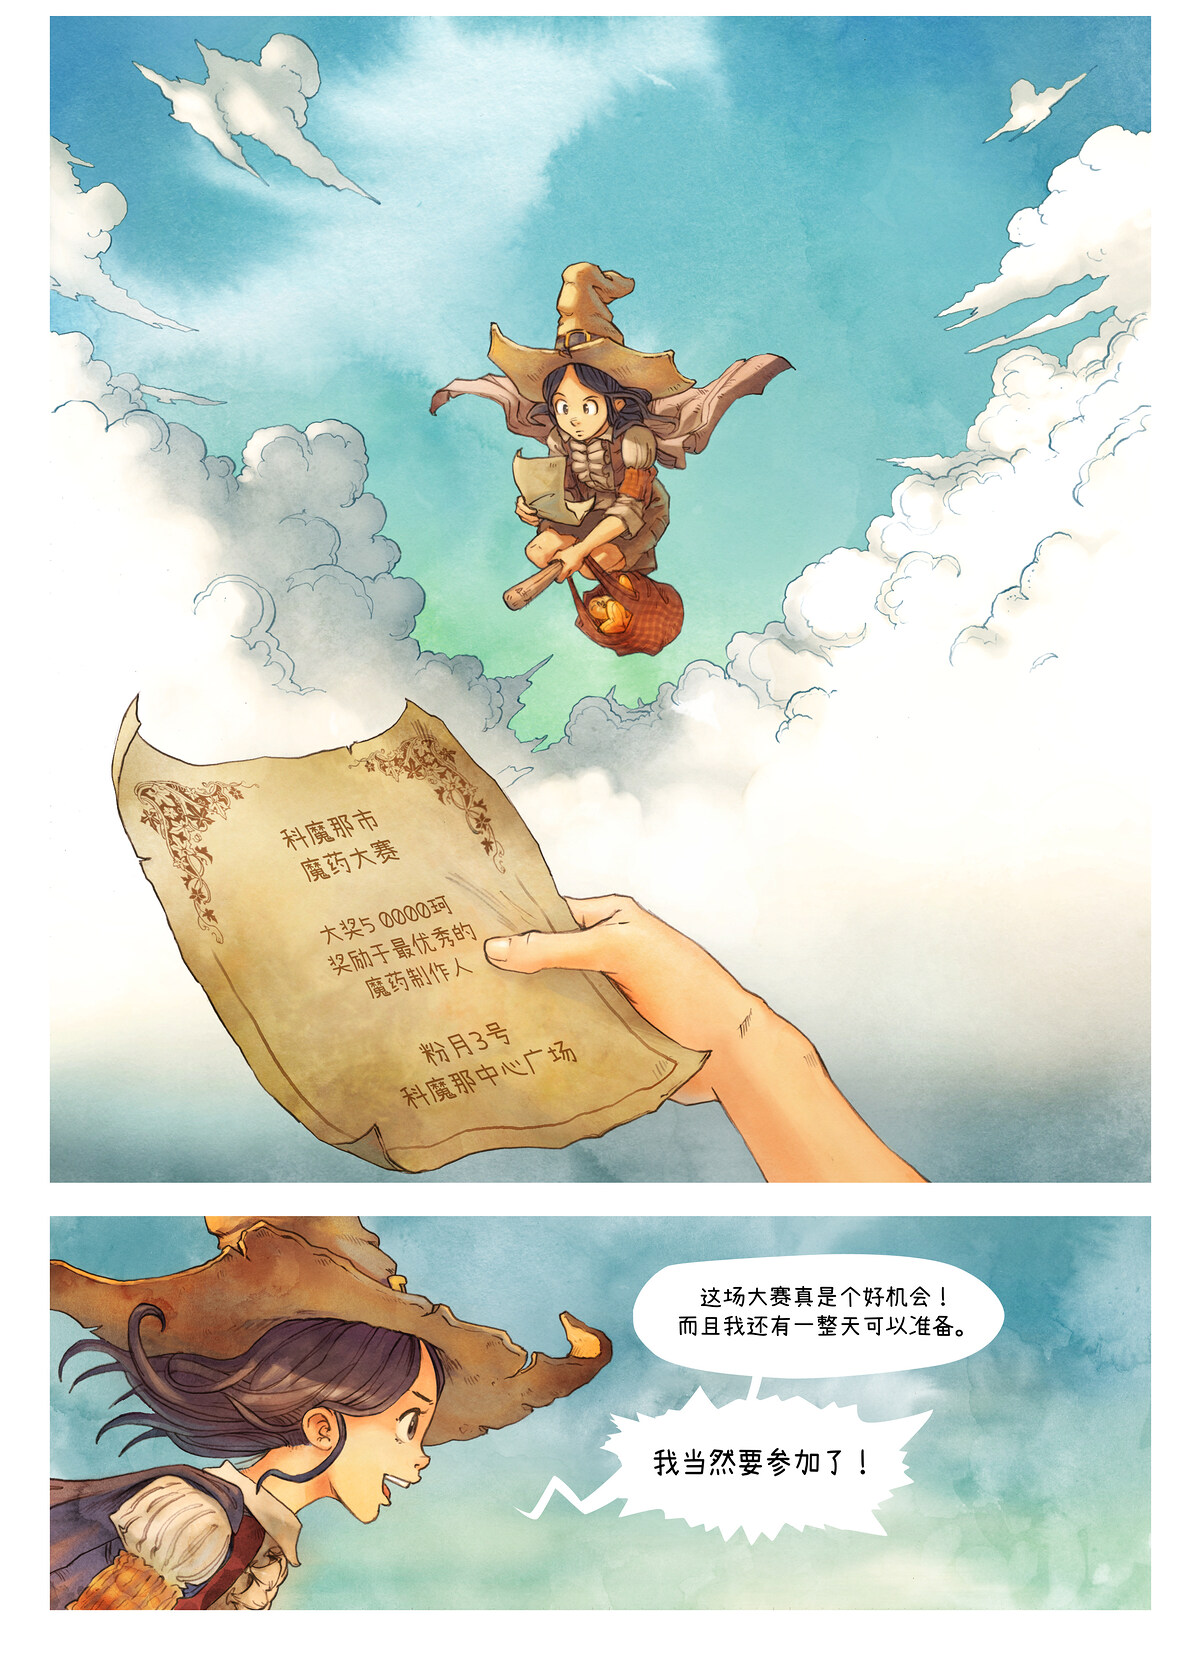 A webcomic page of Pepper&Carrot, 漫画全集 3 [cn], 页面 3